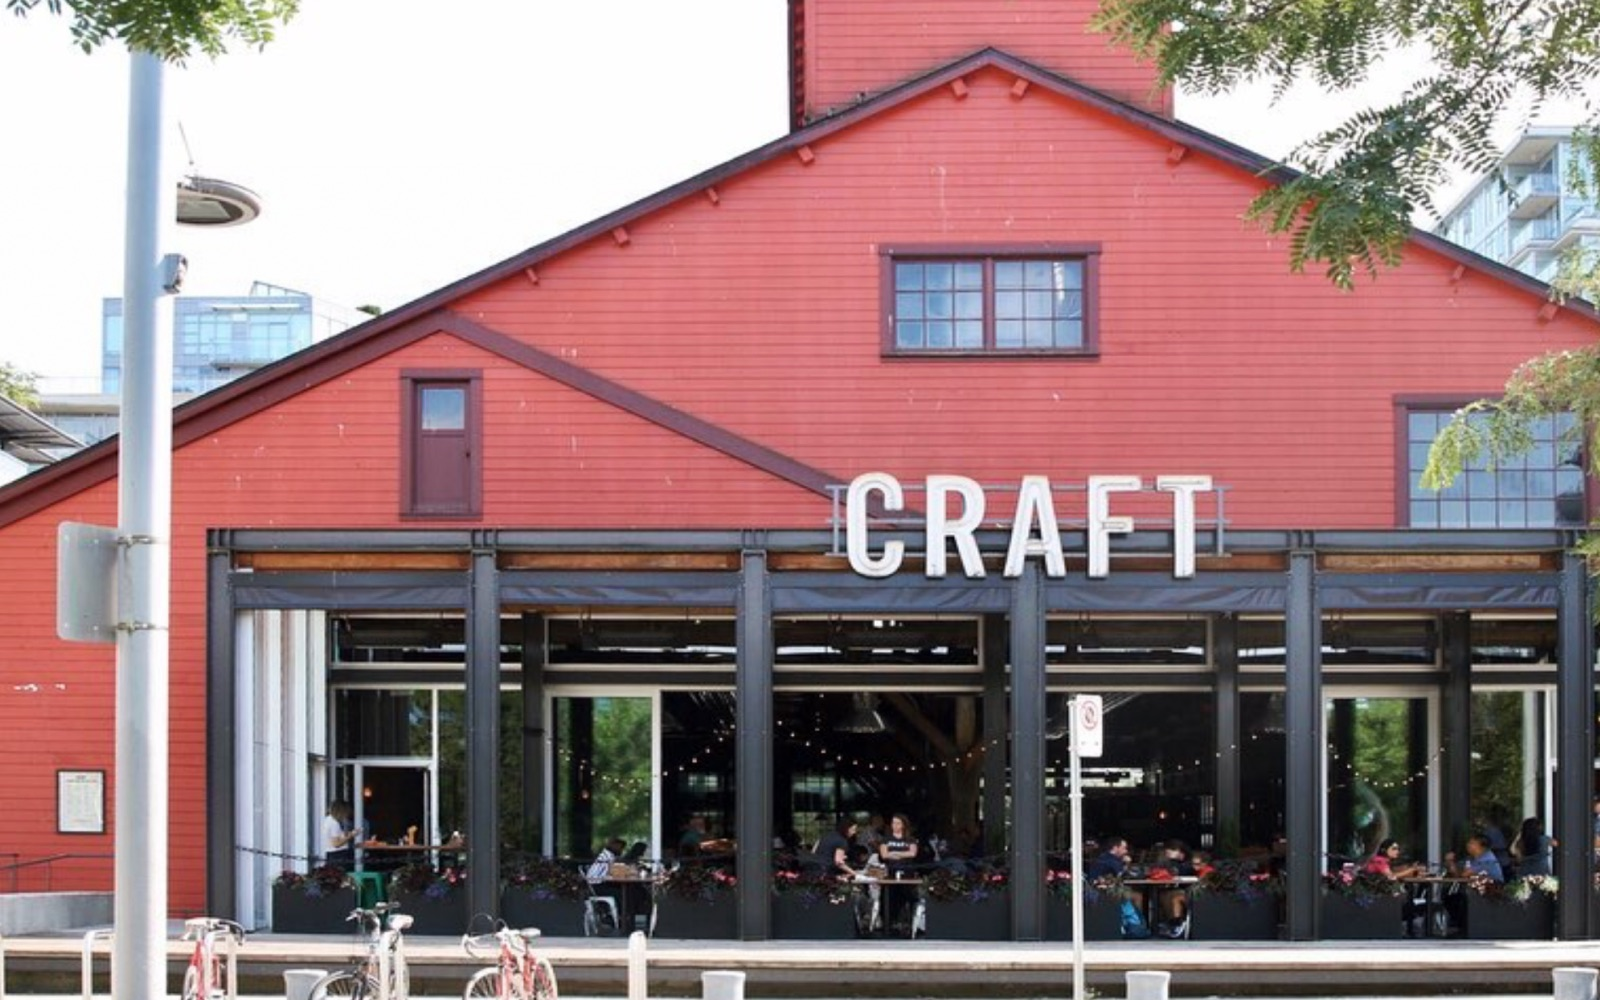 The exterior of Craft Beer Market, Olympic Village